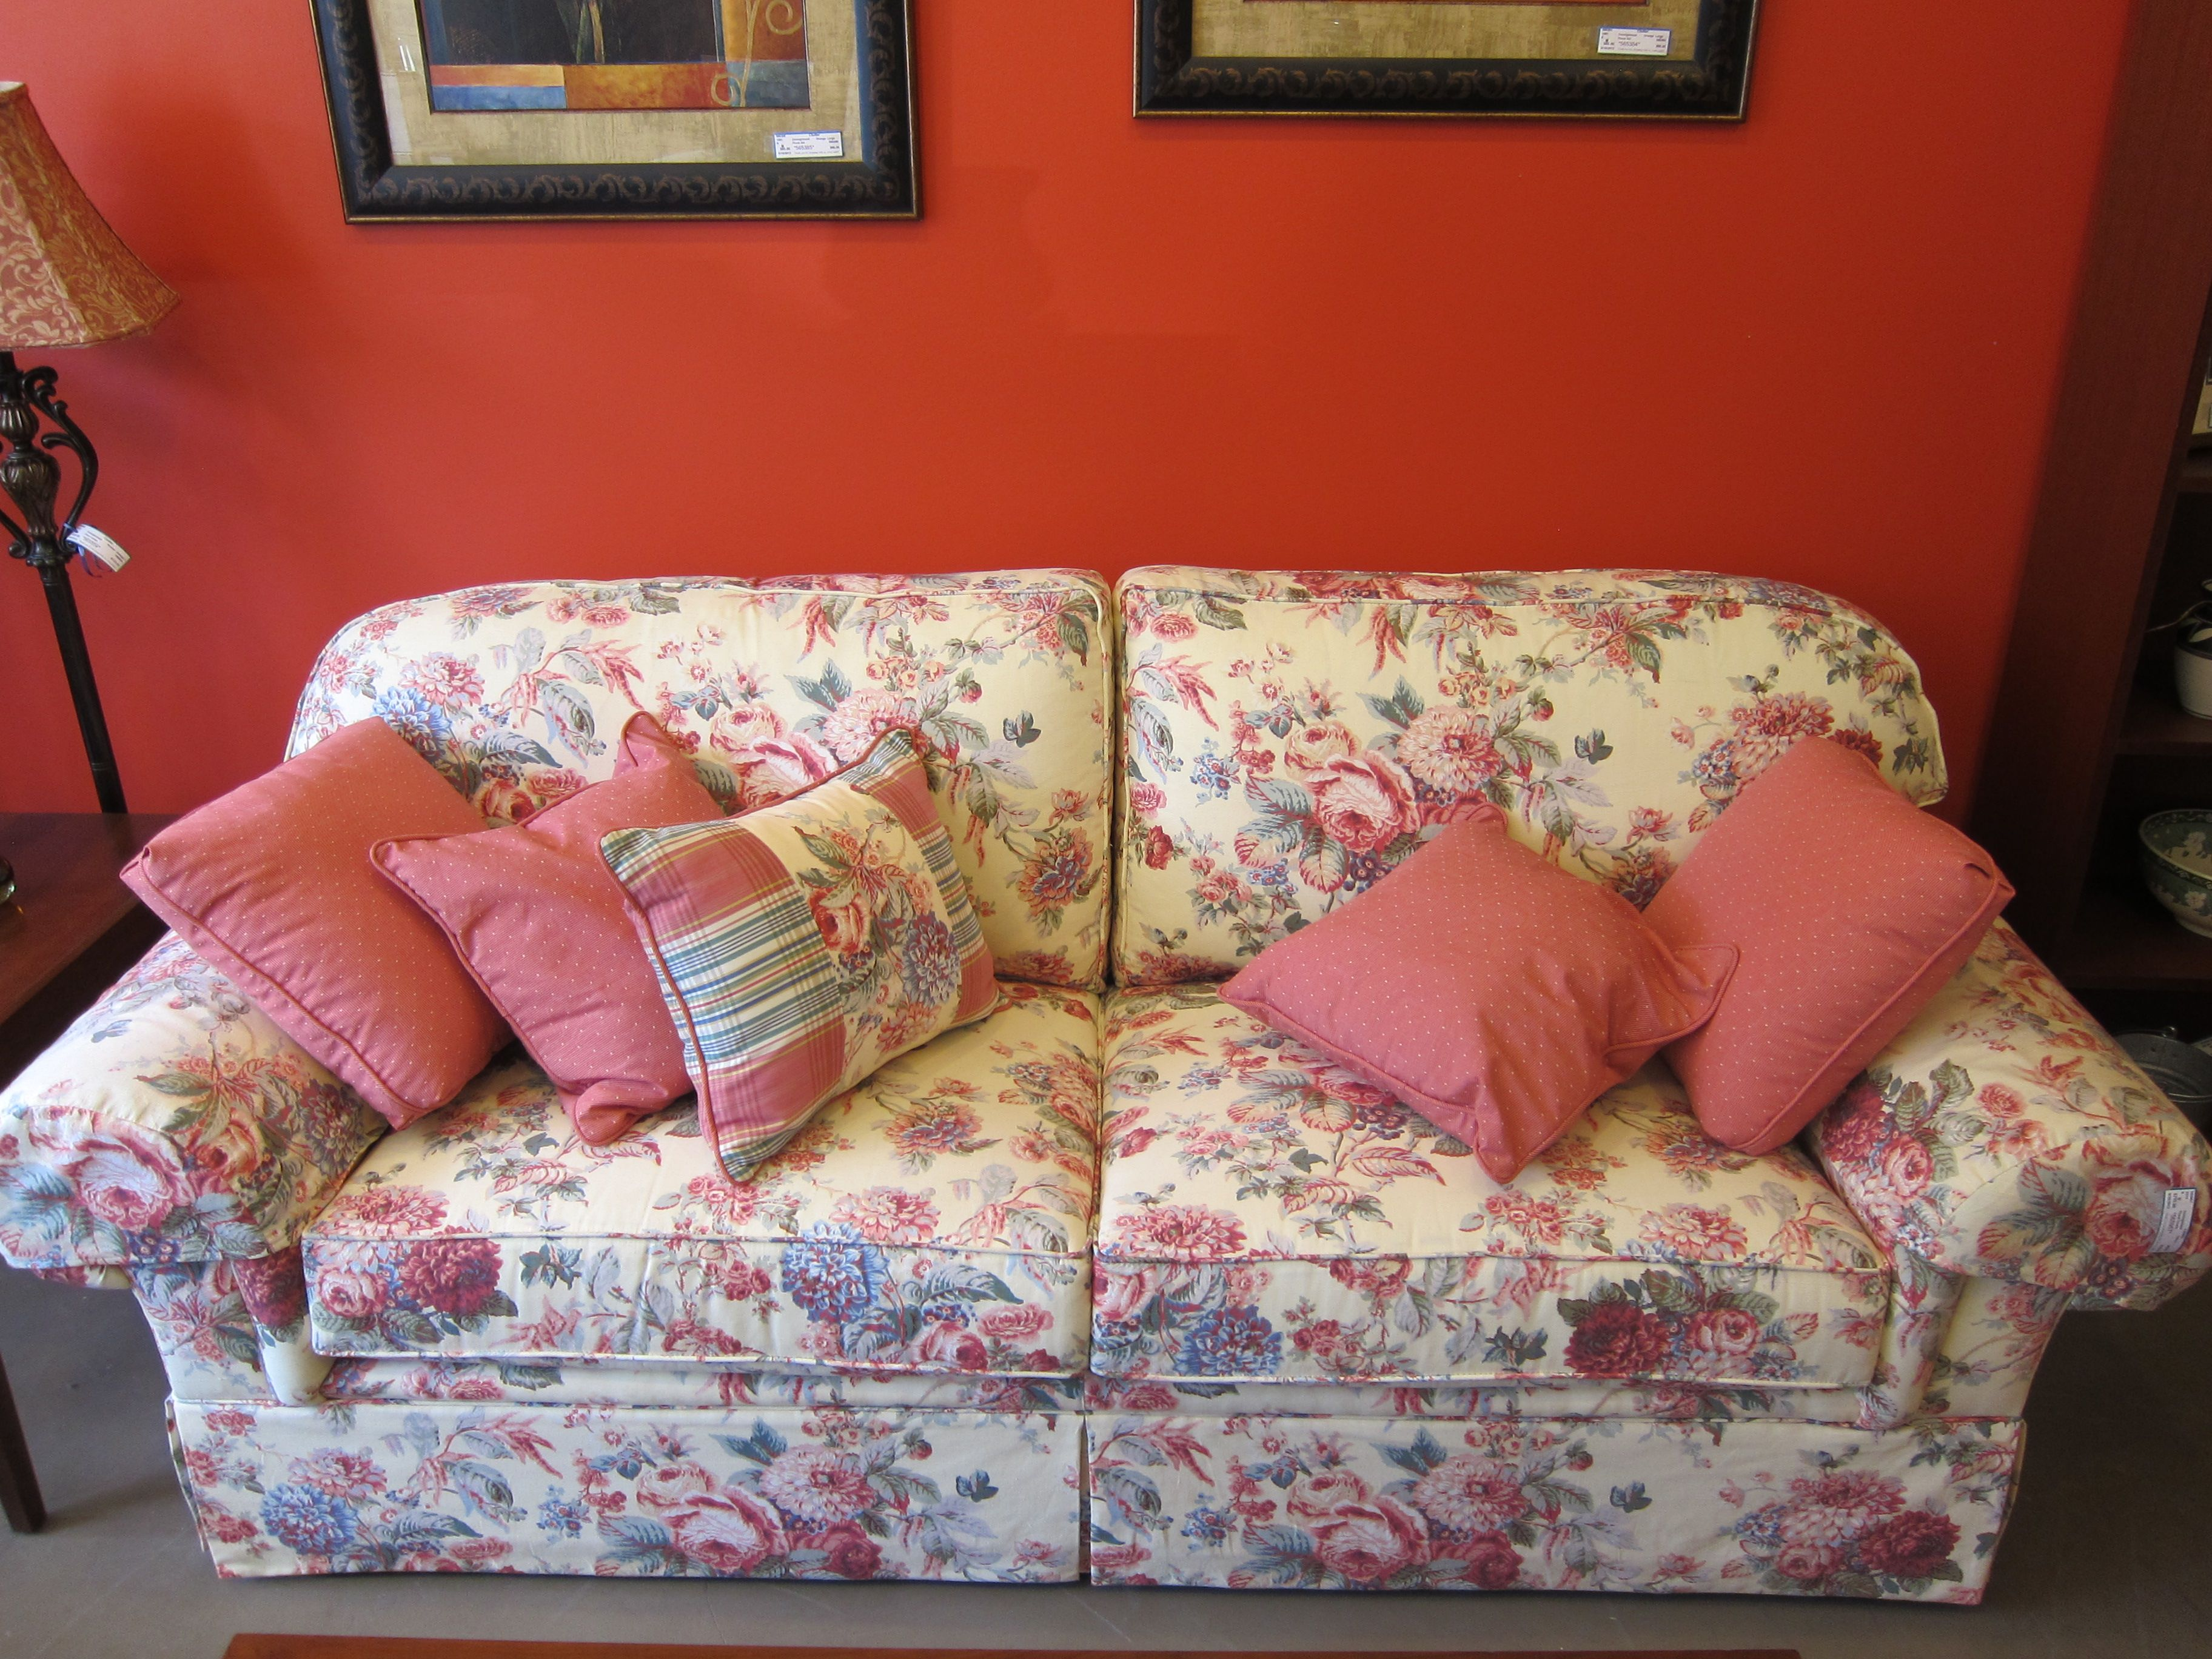 Floral print couch | Furniture | Pinterest | Living room ...